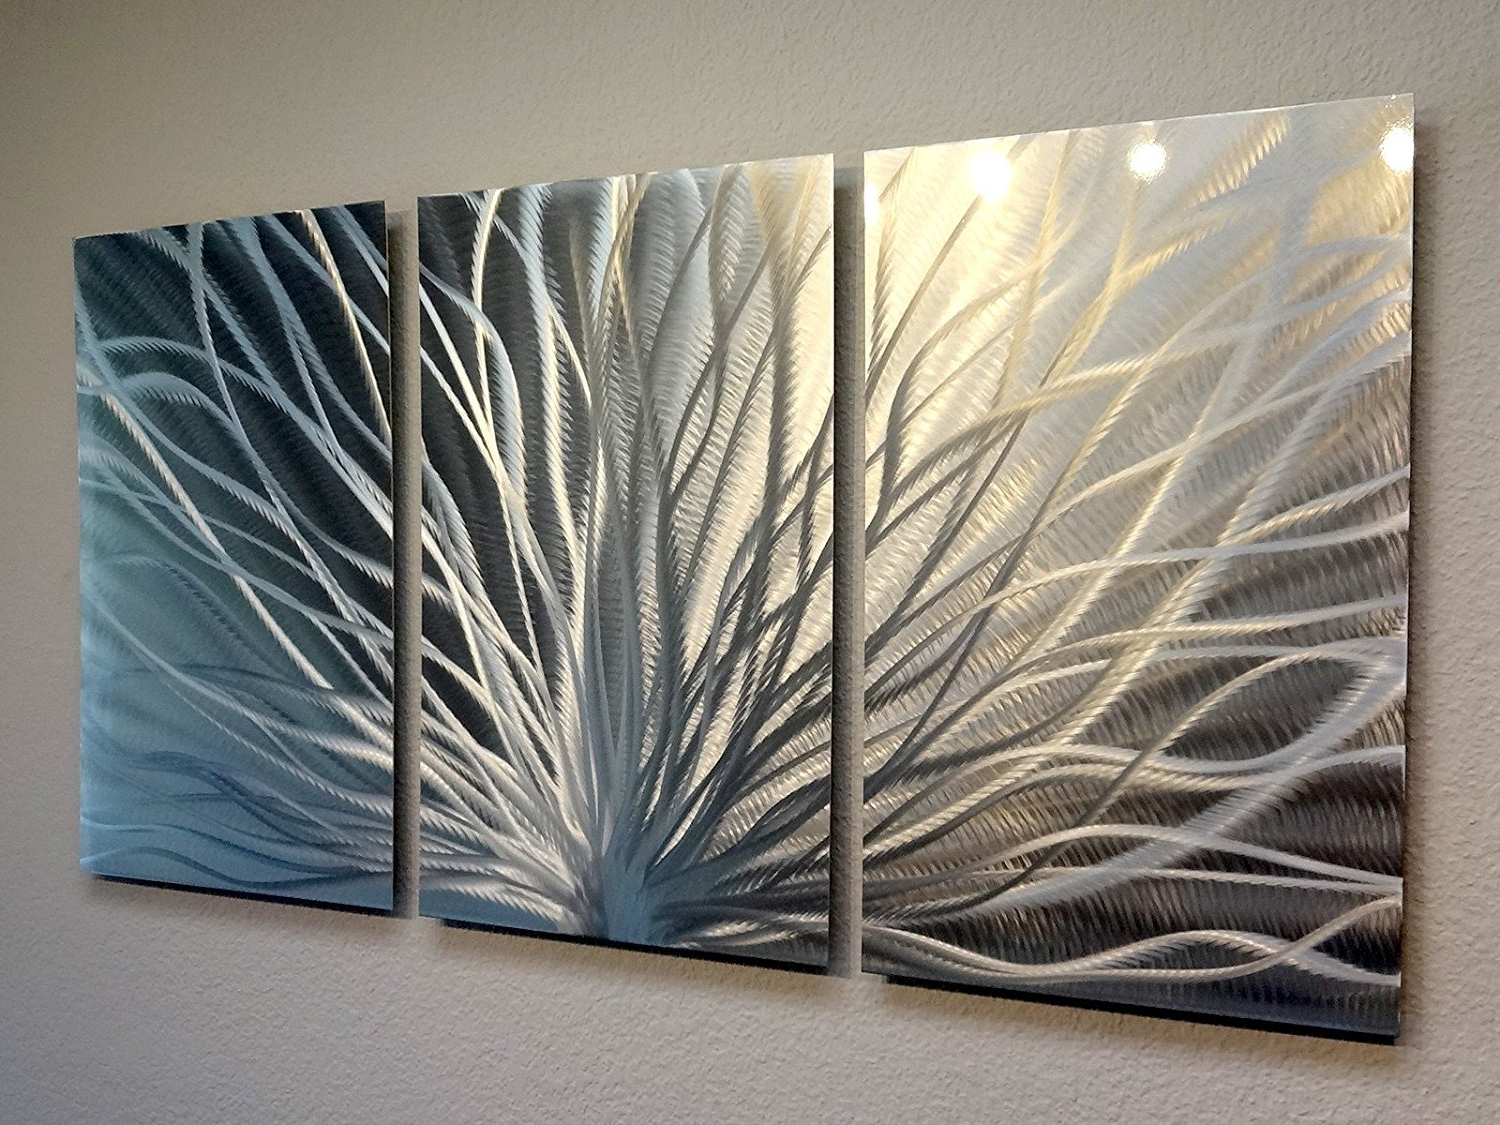 Most Recent Abstract Wall Art In Amazon: Metal Wall Art, Modern Home Decor, Abstract Wall (View 10 of 15)